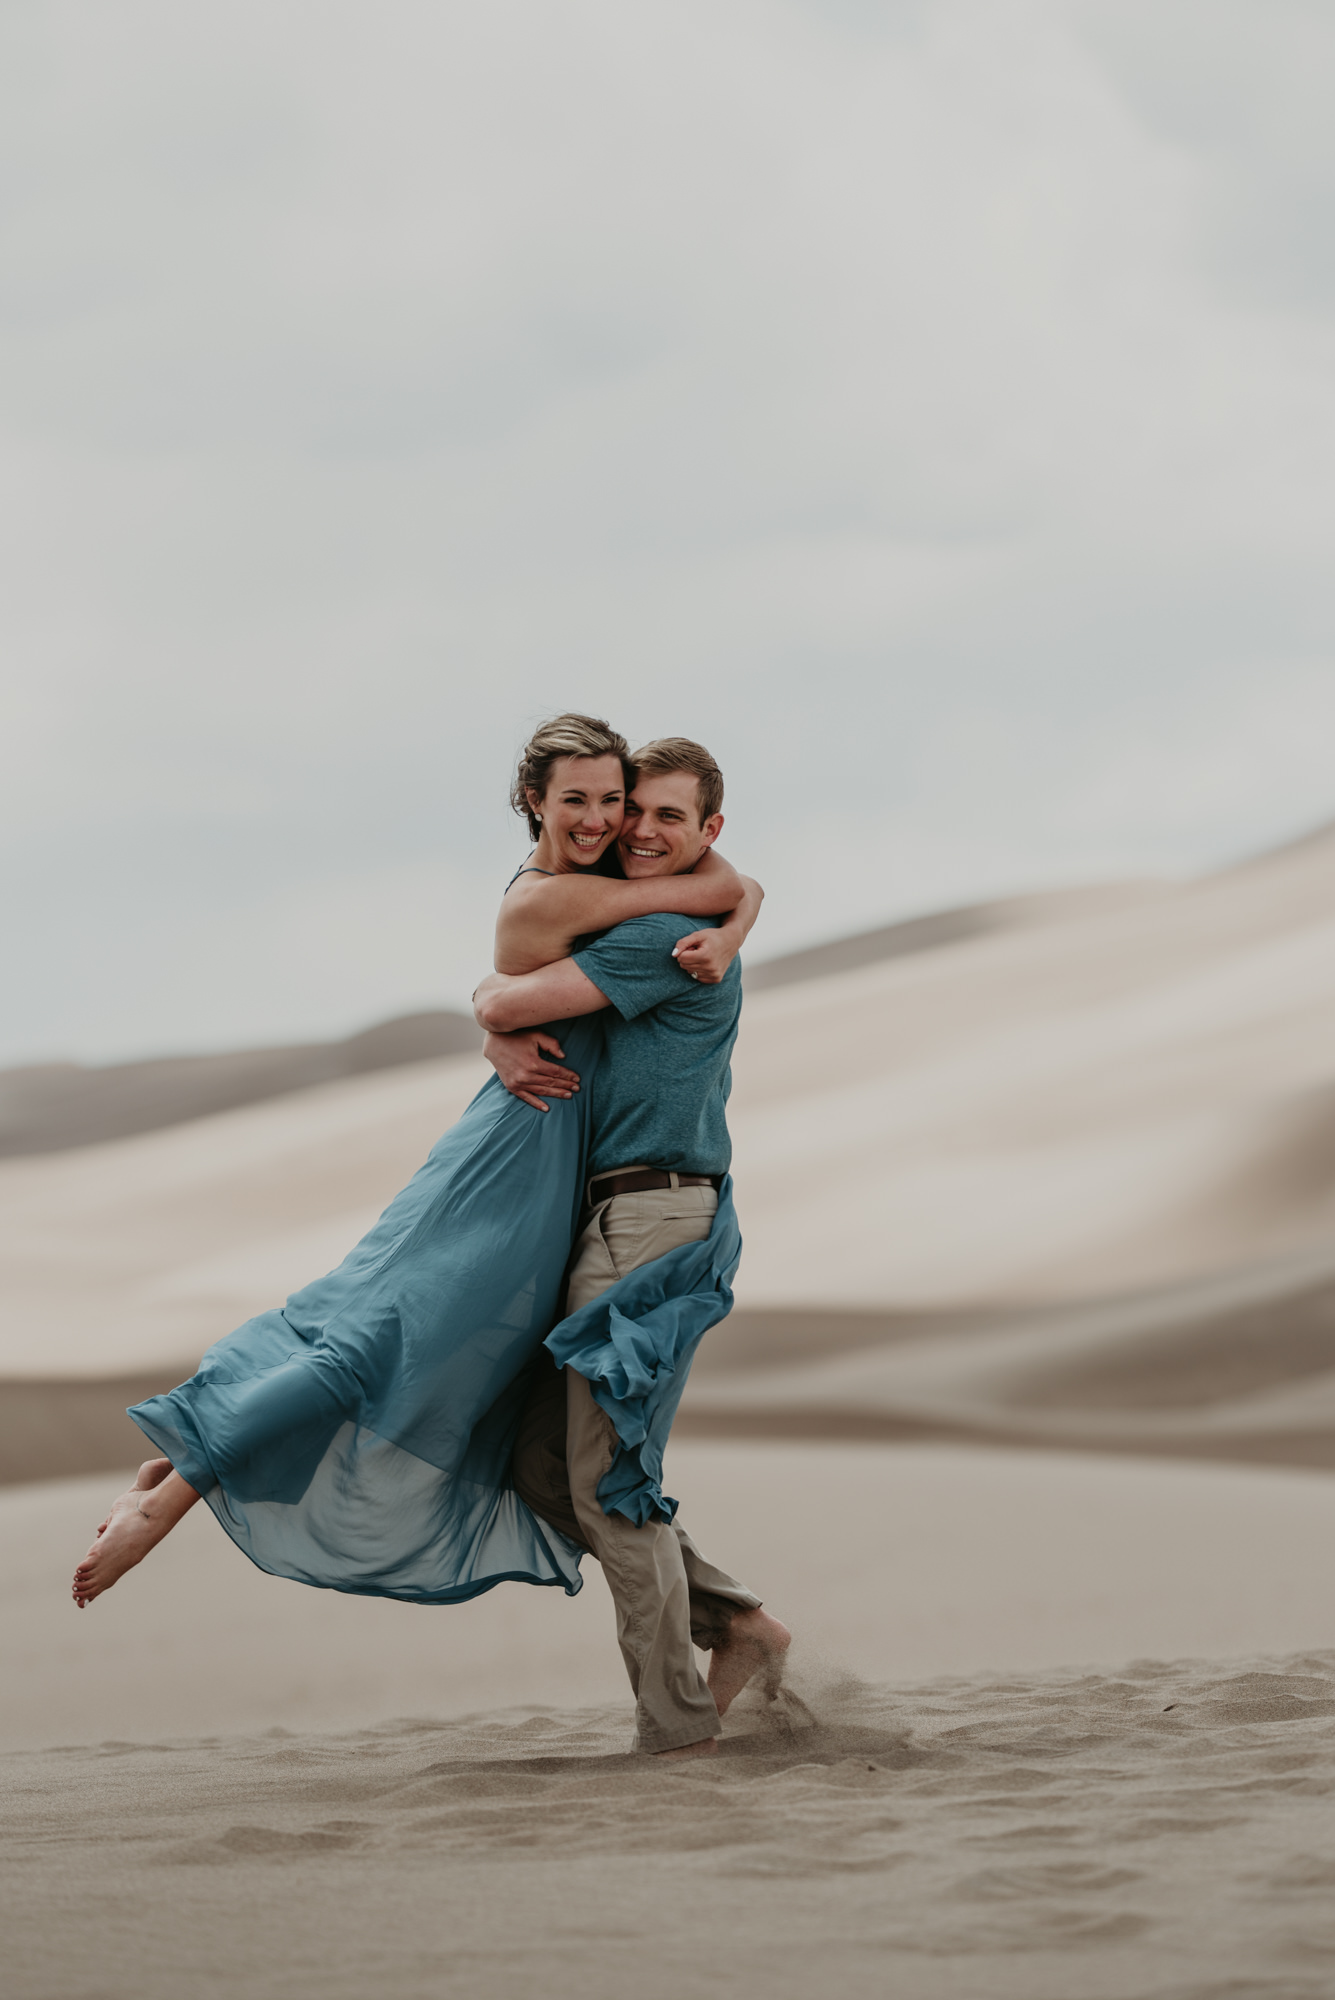 Wild Earth Weddings is wedding photography for nature lovers.